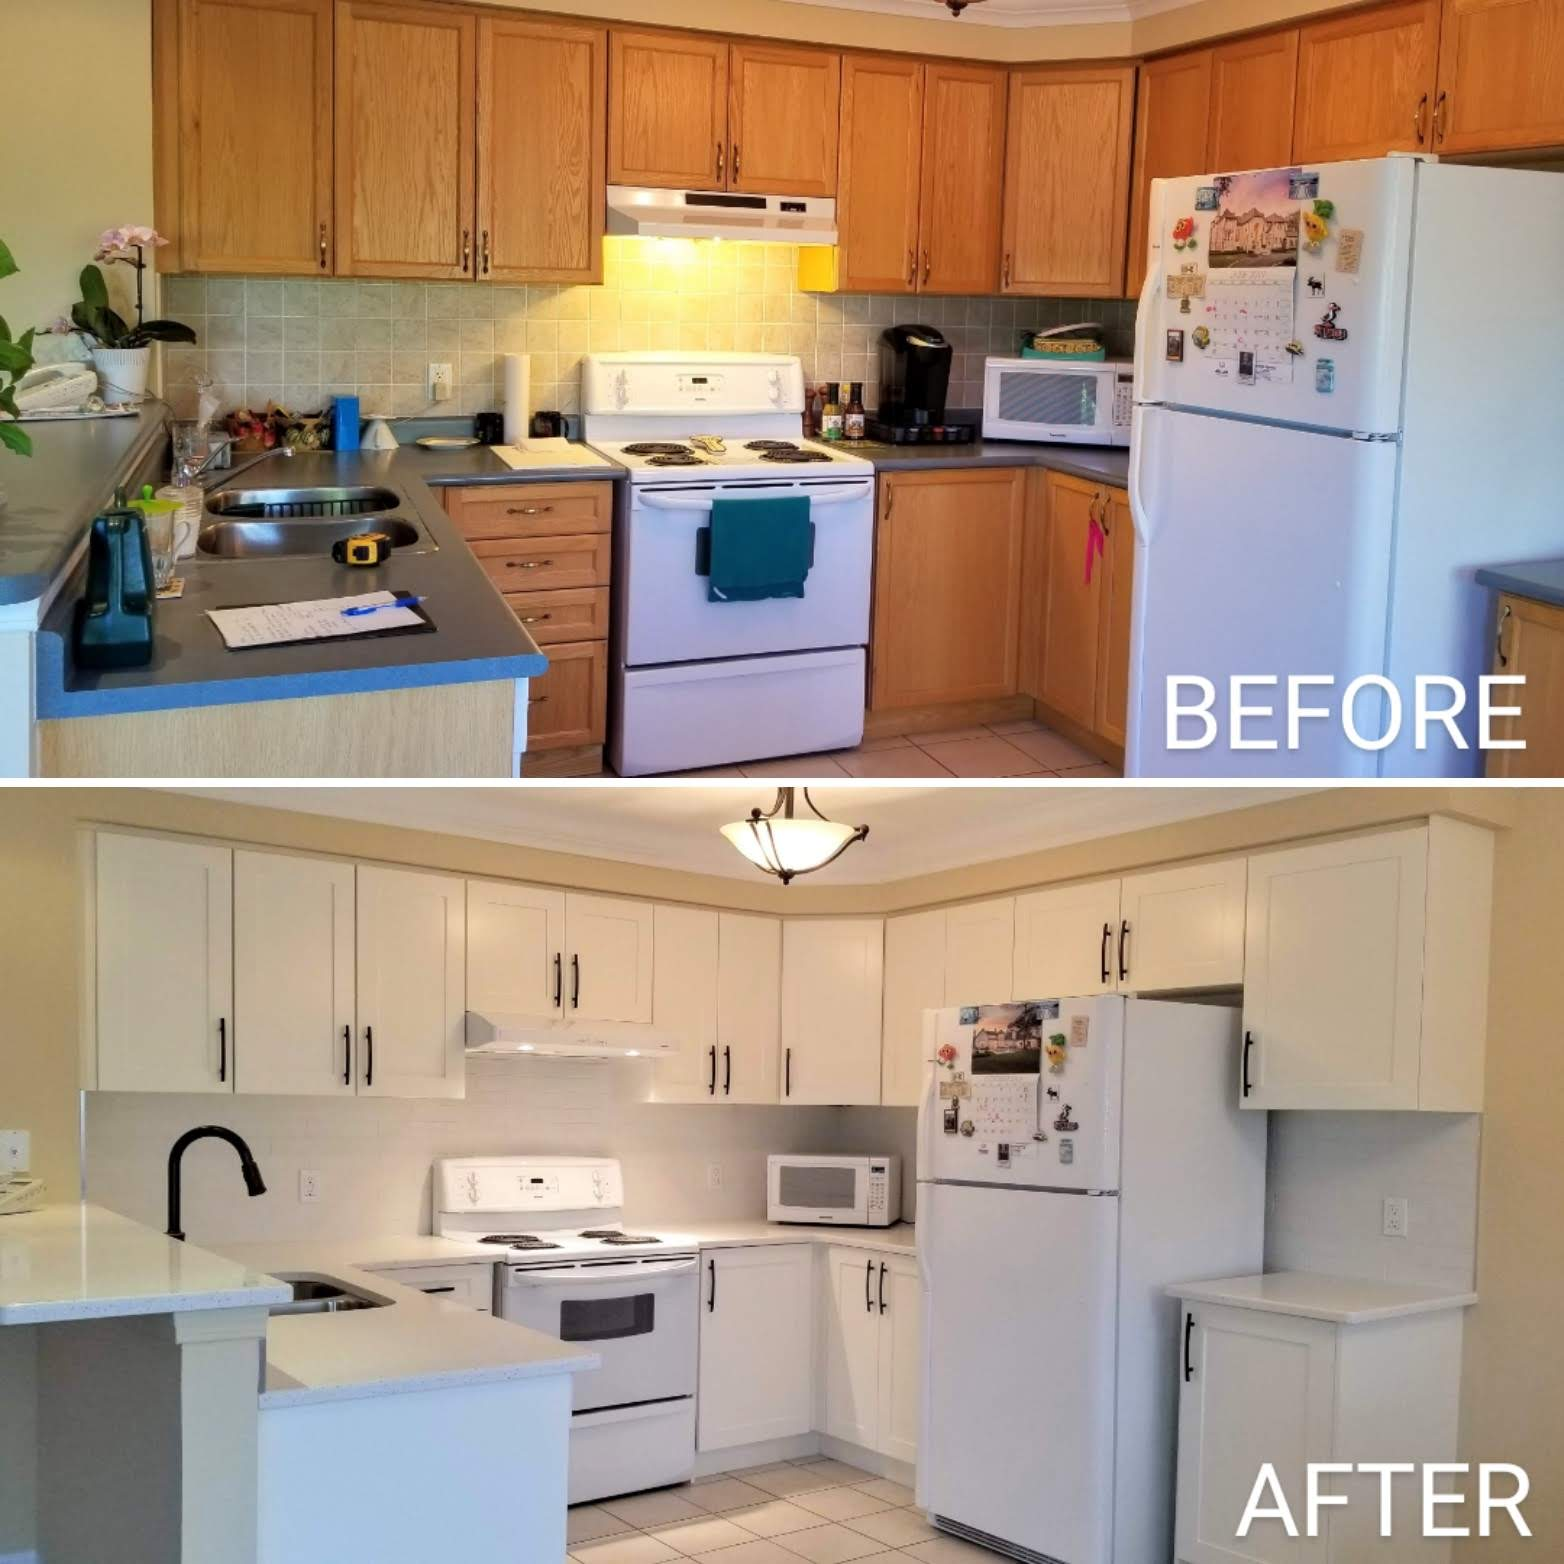 Before and after kitchen upgrade